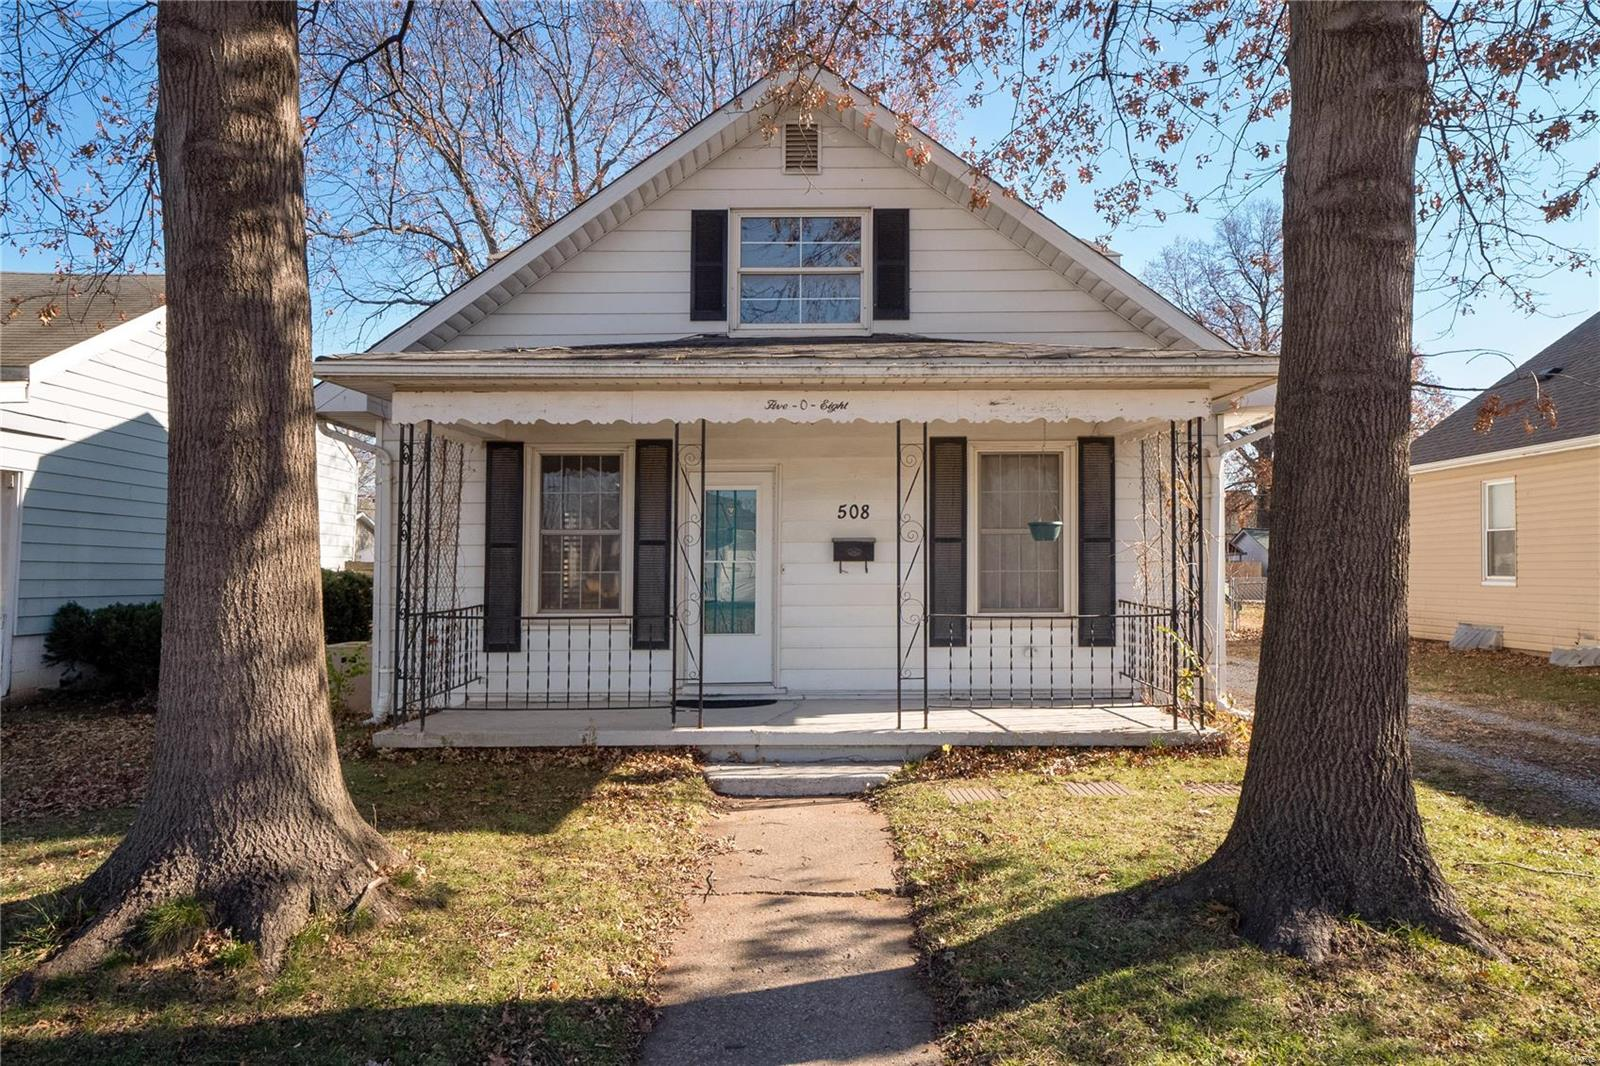 508 N 2nd Street Property Photo - Dupo, IL real estate listing